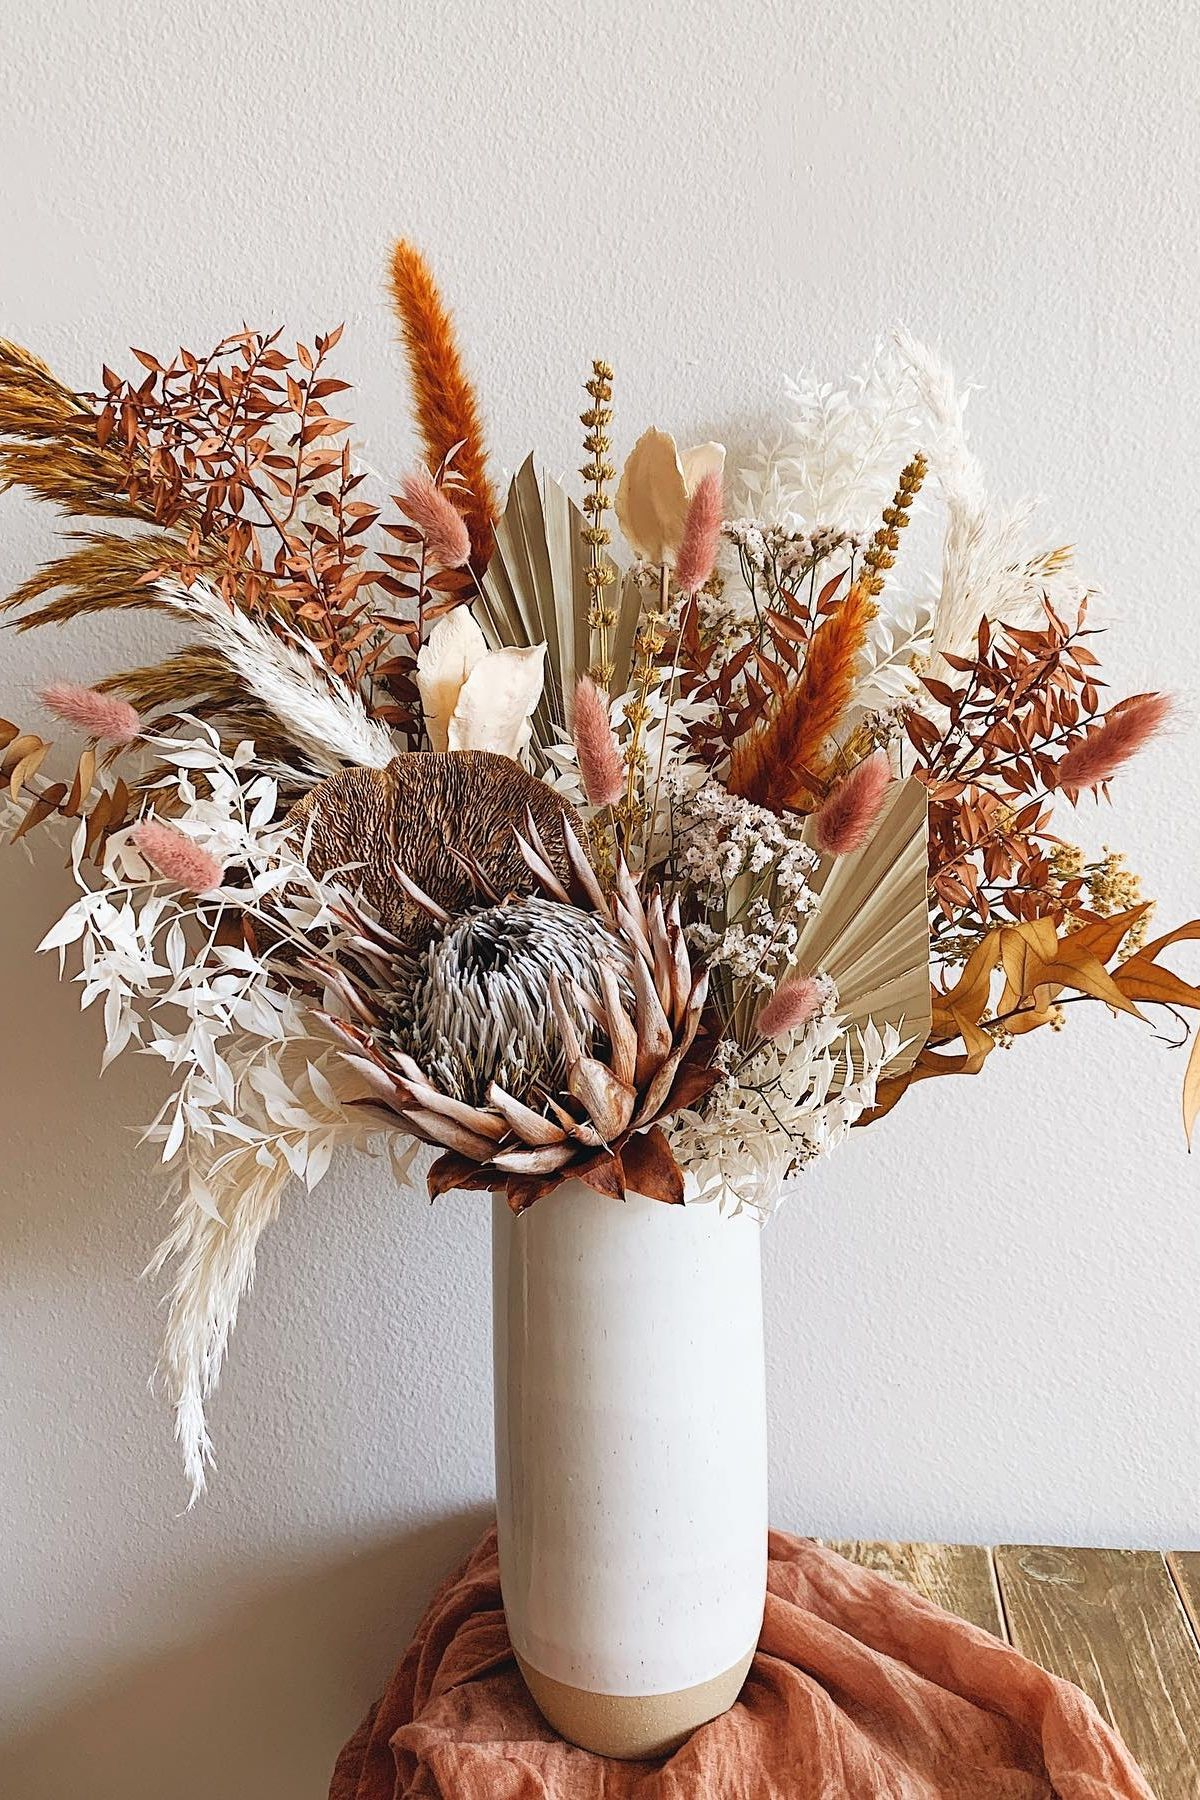 Affordable dried flower arrangements for home decor in